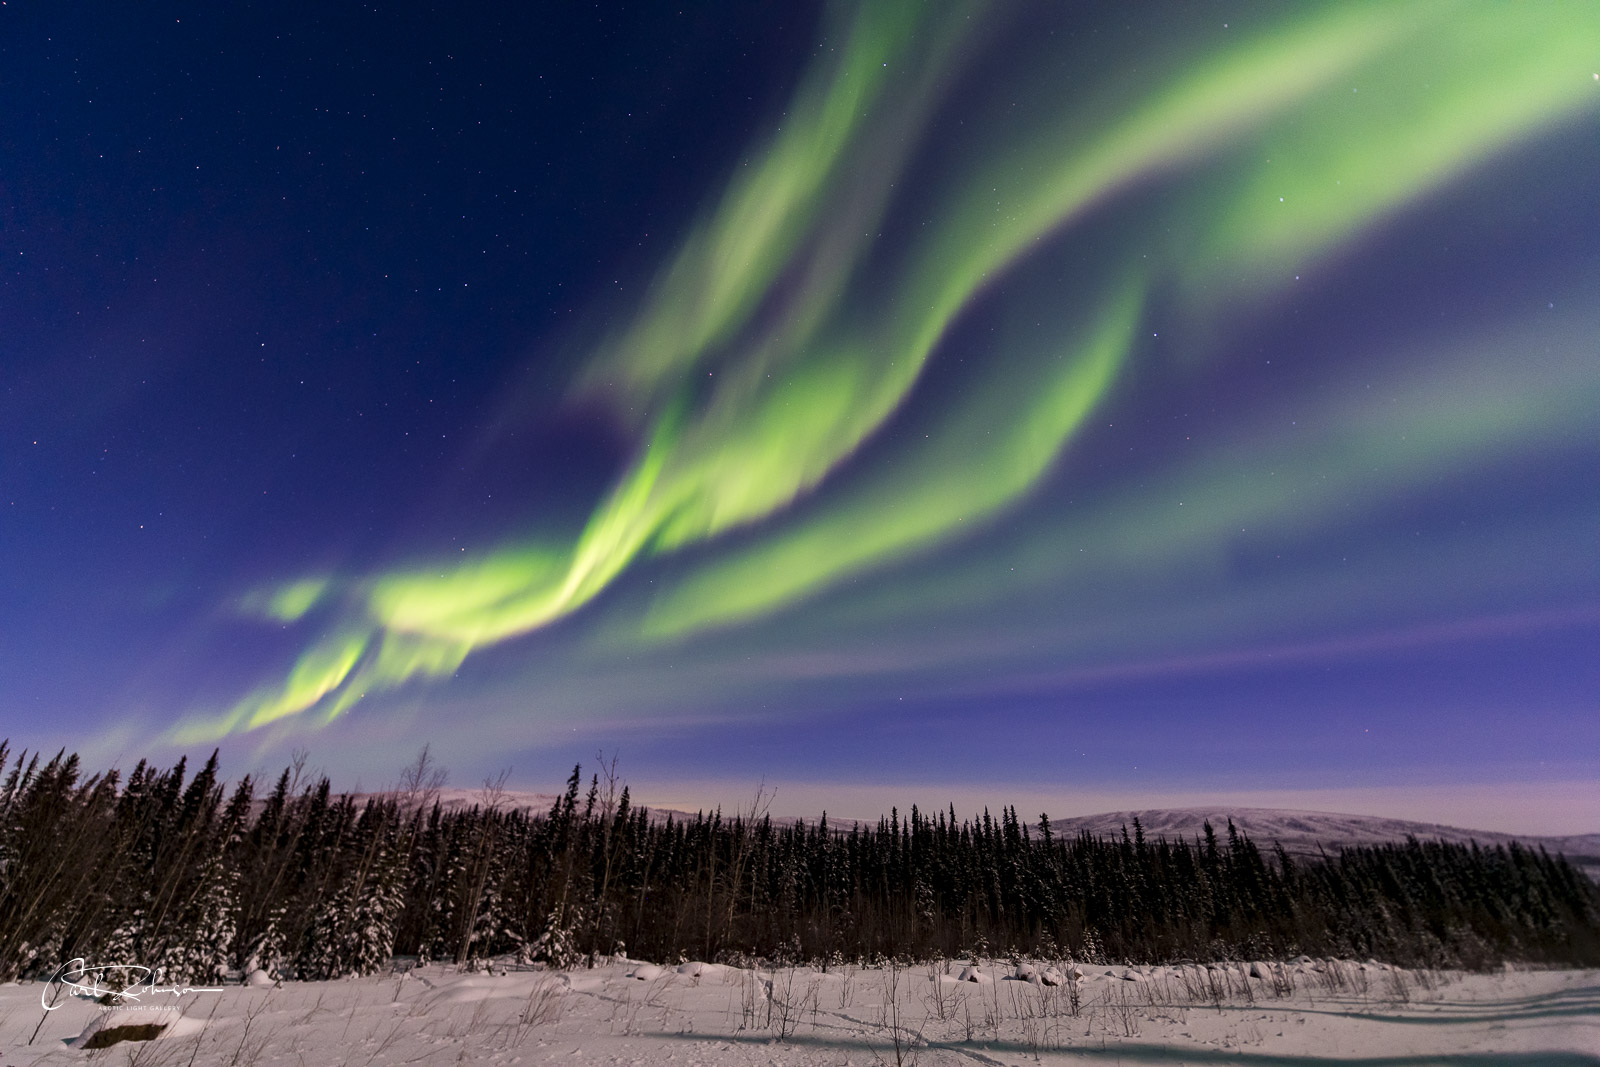 Several active, moving layers of the aurora borealis fan across the sky over some trees along the Dalton Highway.